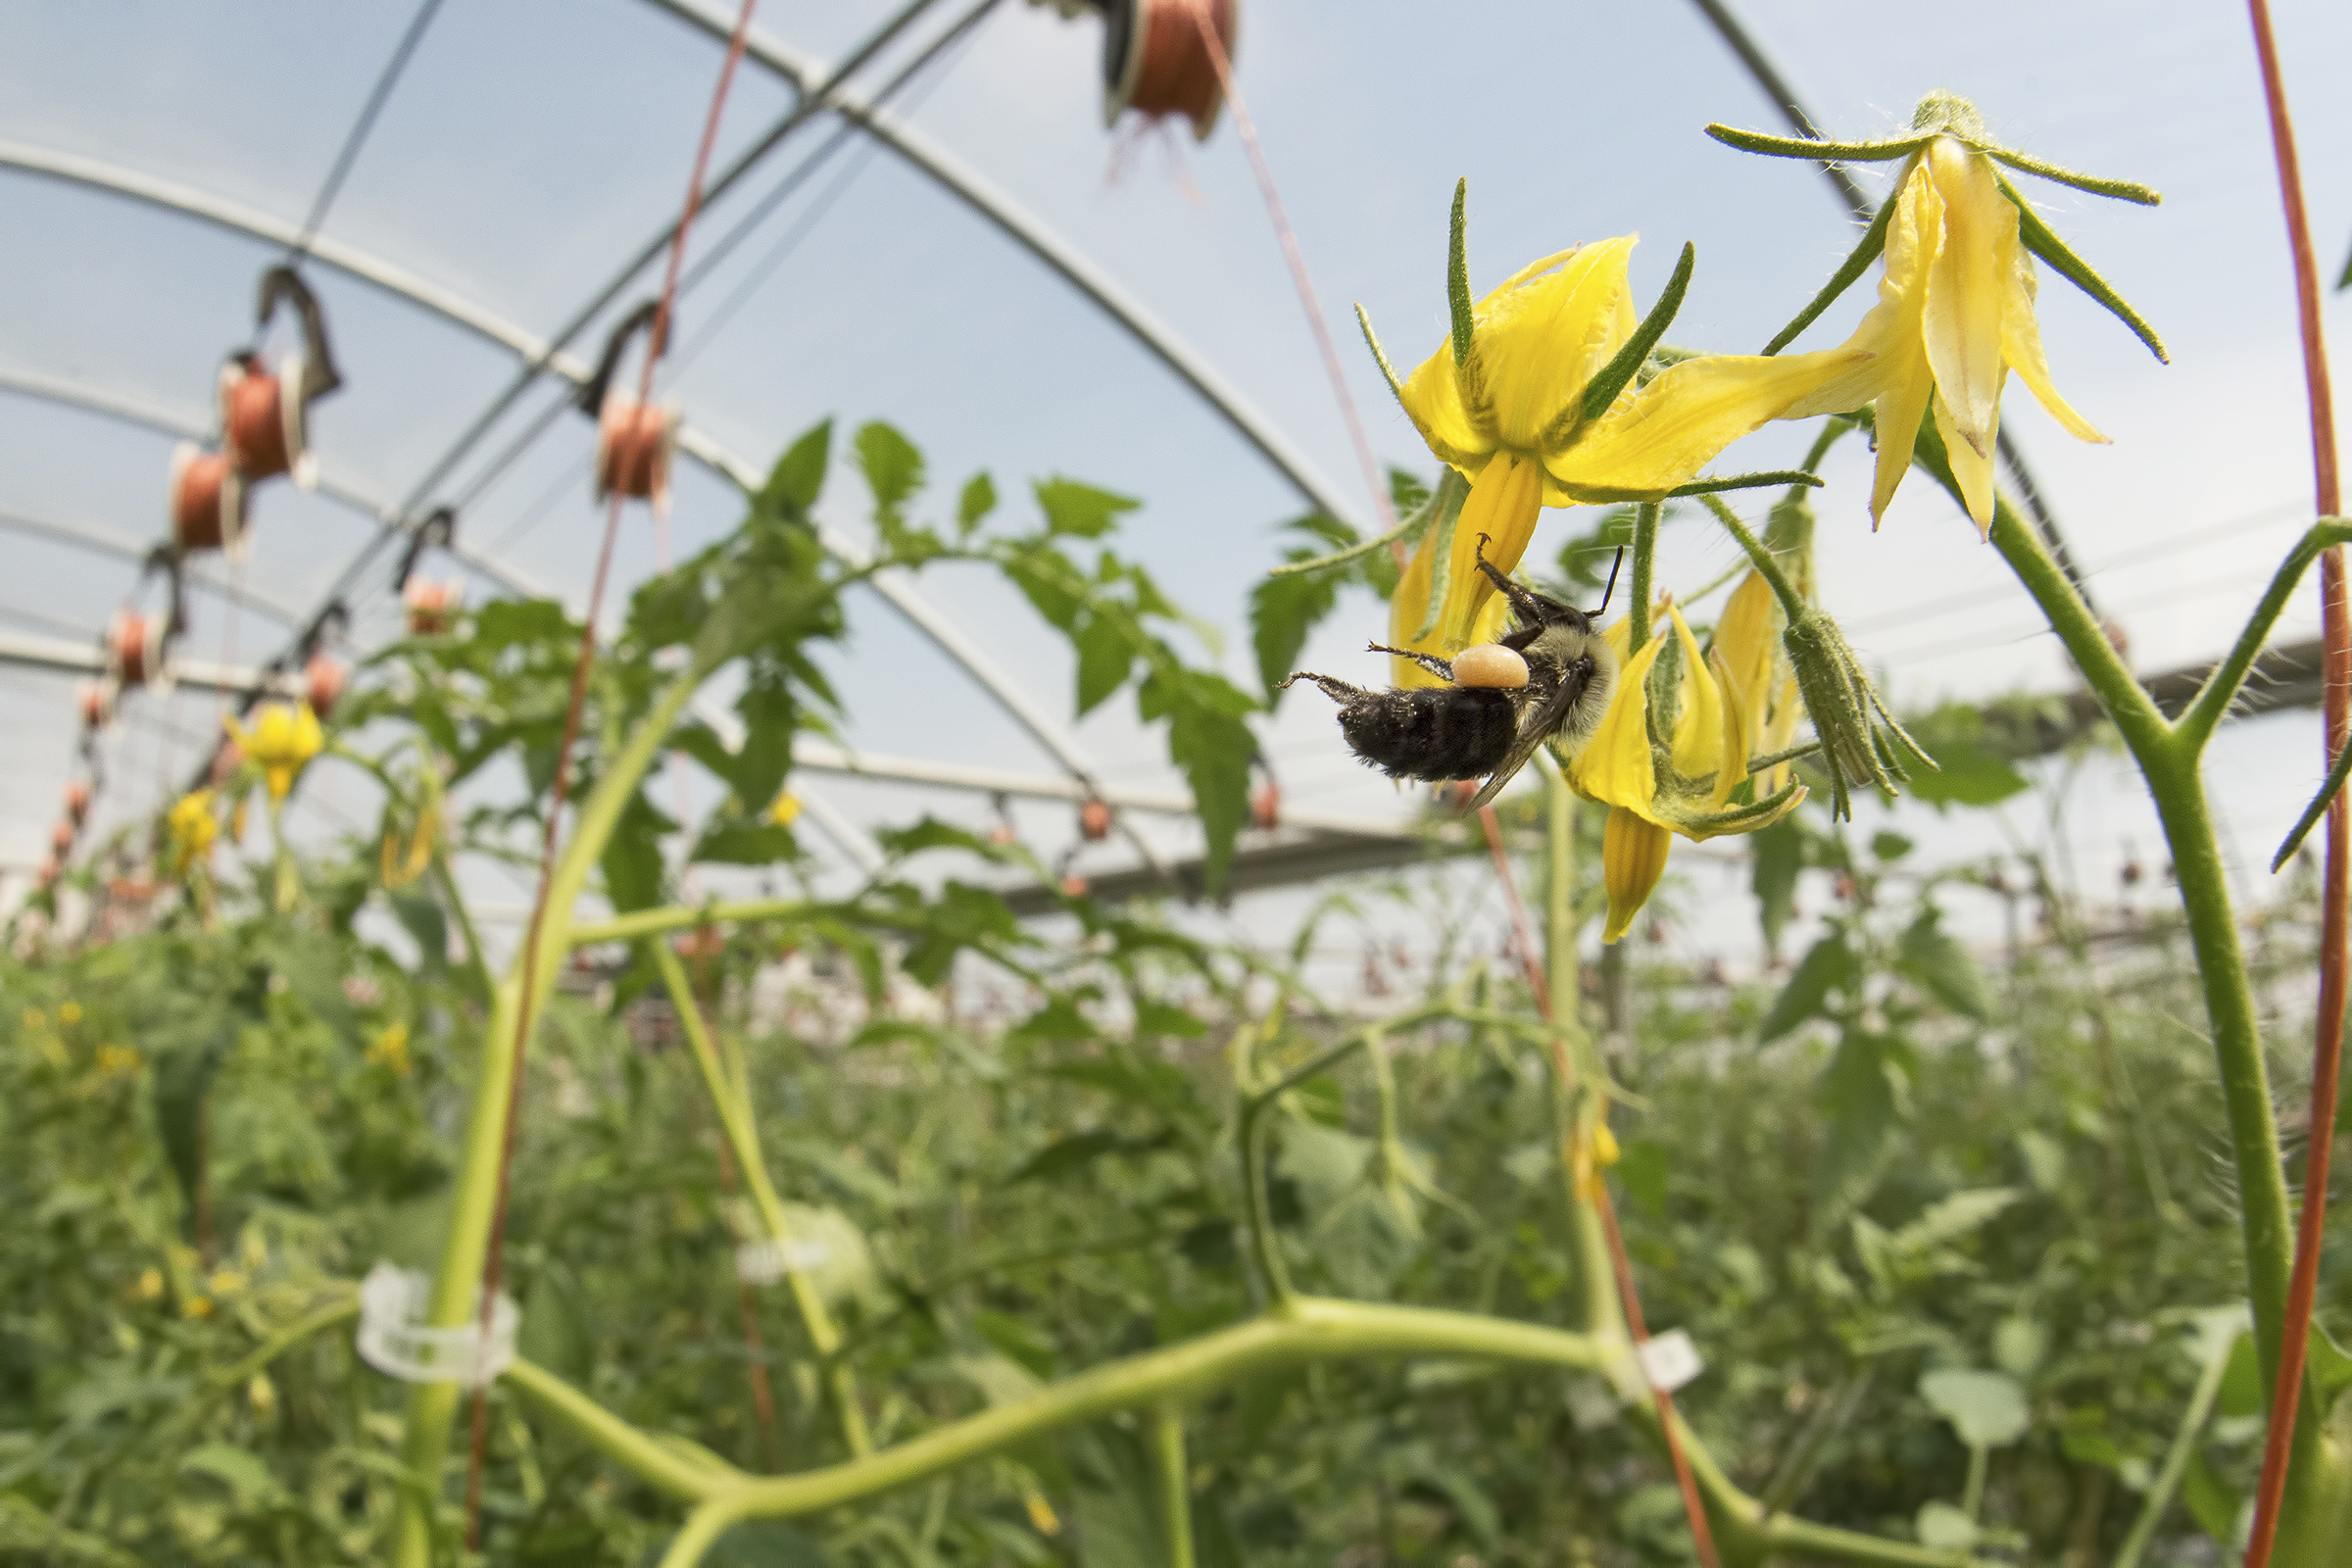 A bumble bee visiting a greenhouse tomato. (c) Clay Bolt